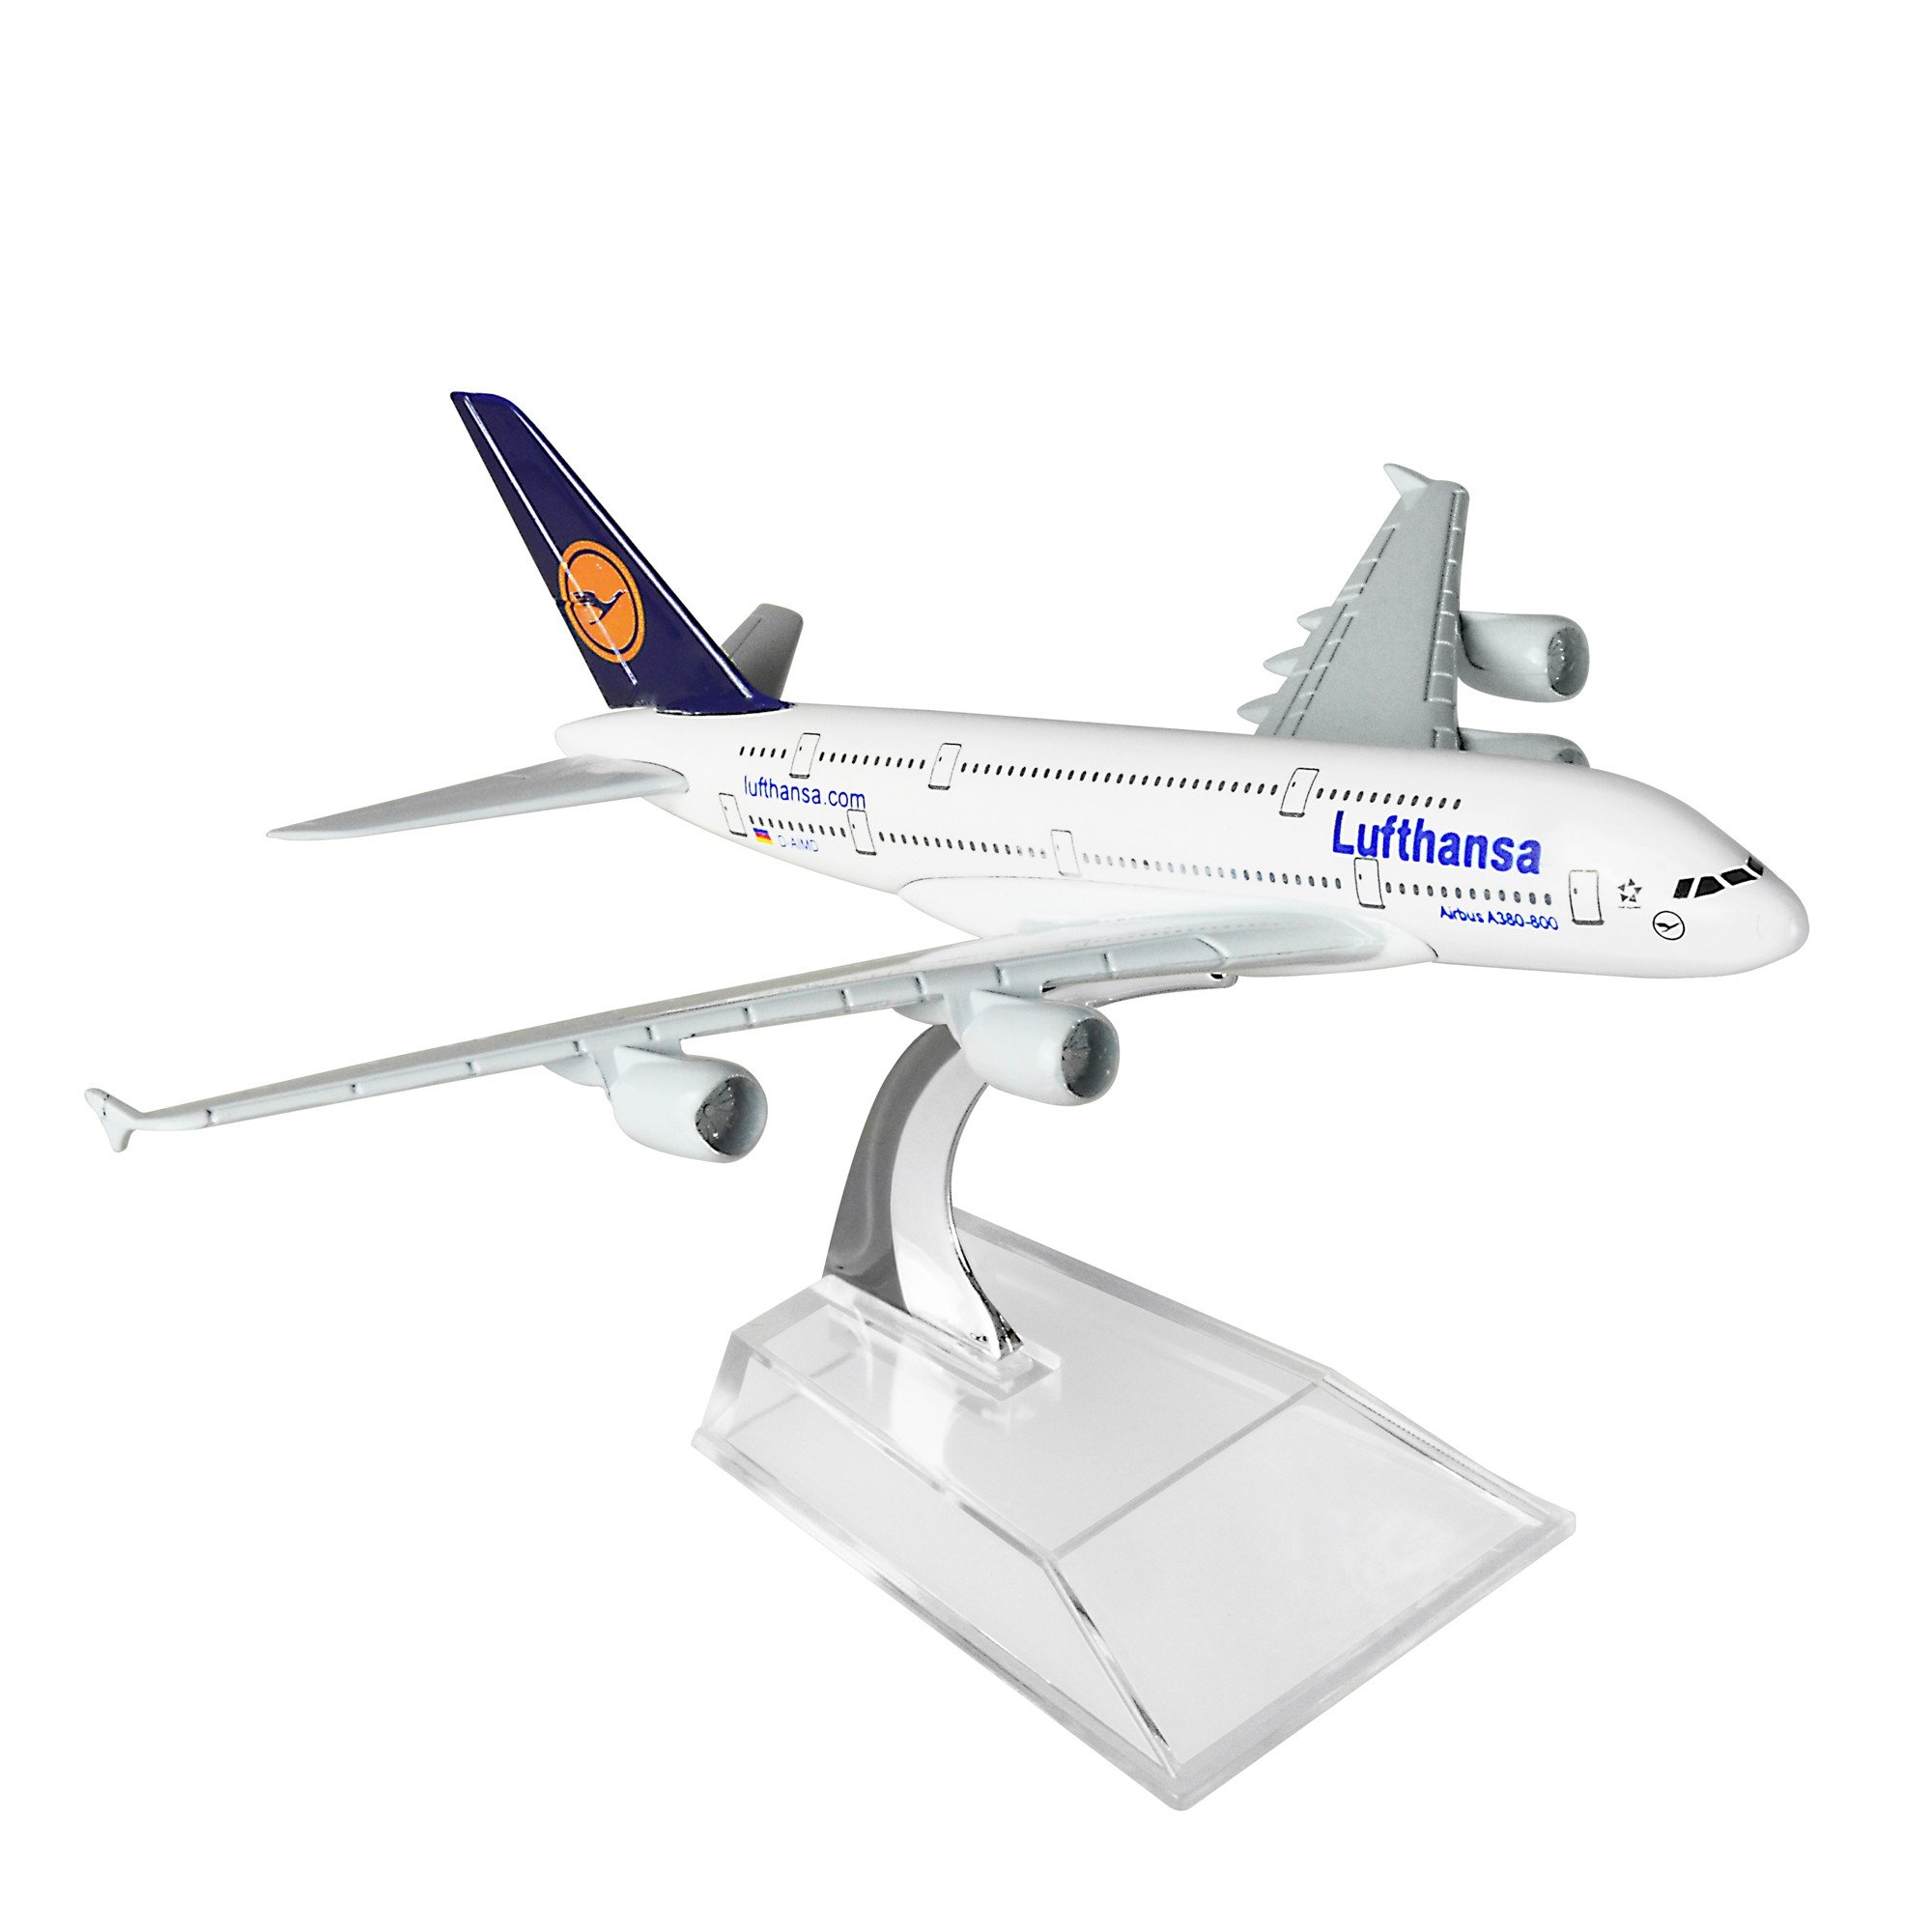 HANGHANG German Lufthansa Airbus 380 16cm Metal Airplane Models Child Birthday Gift Plane Models Home Decoration